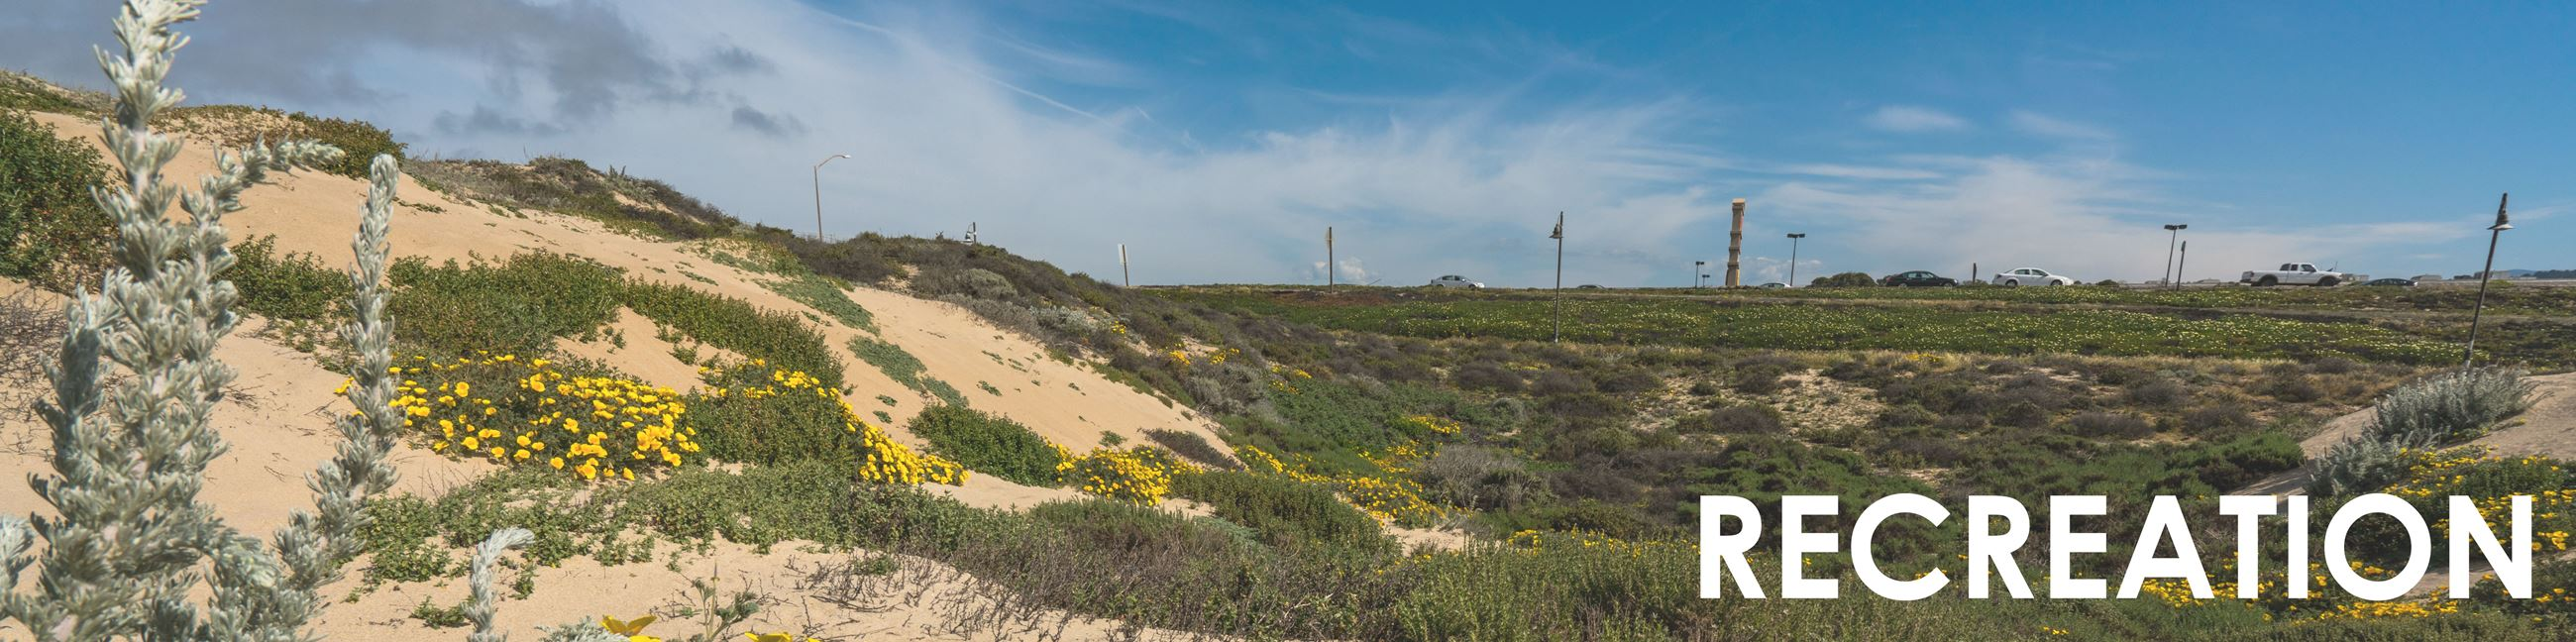 Sand dunes and plants near beach